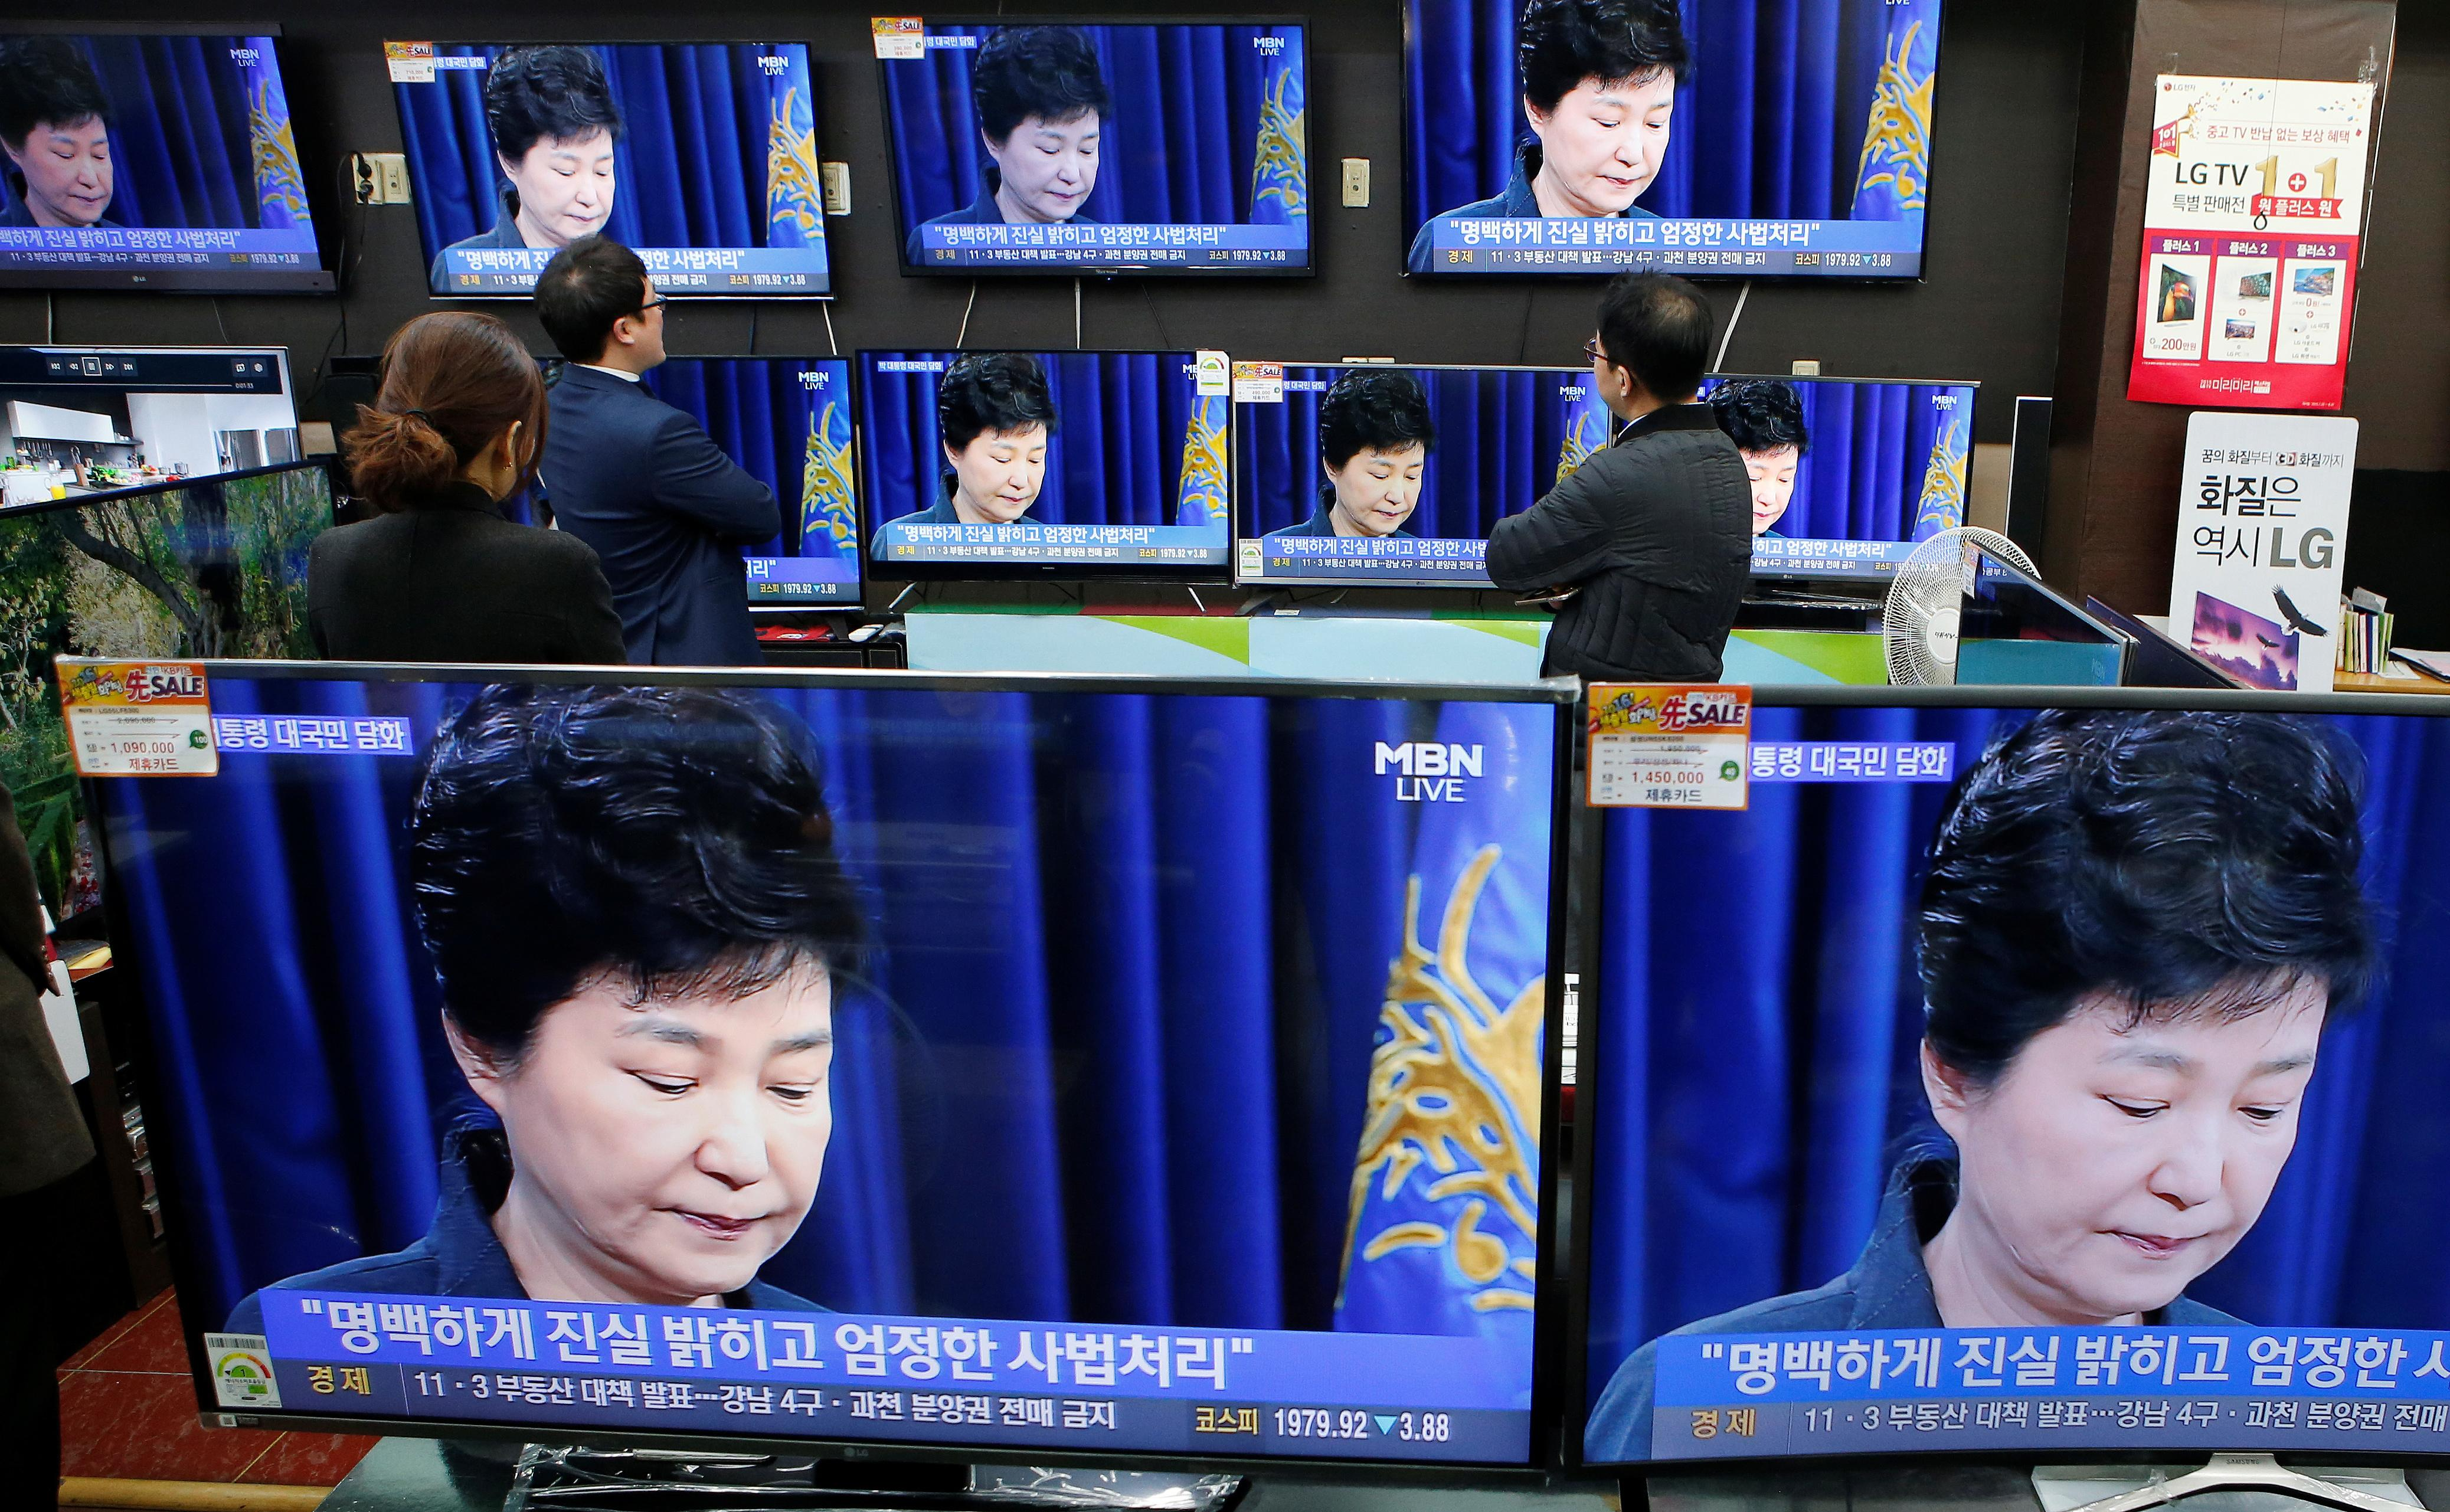 South Korean President Scandal Explained: 5 Facts About Controversy Surrounding Park Geun-Hye And Close Aide